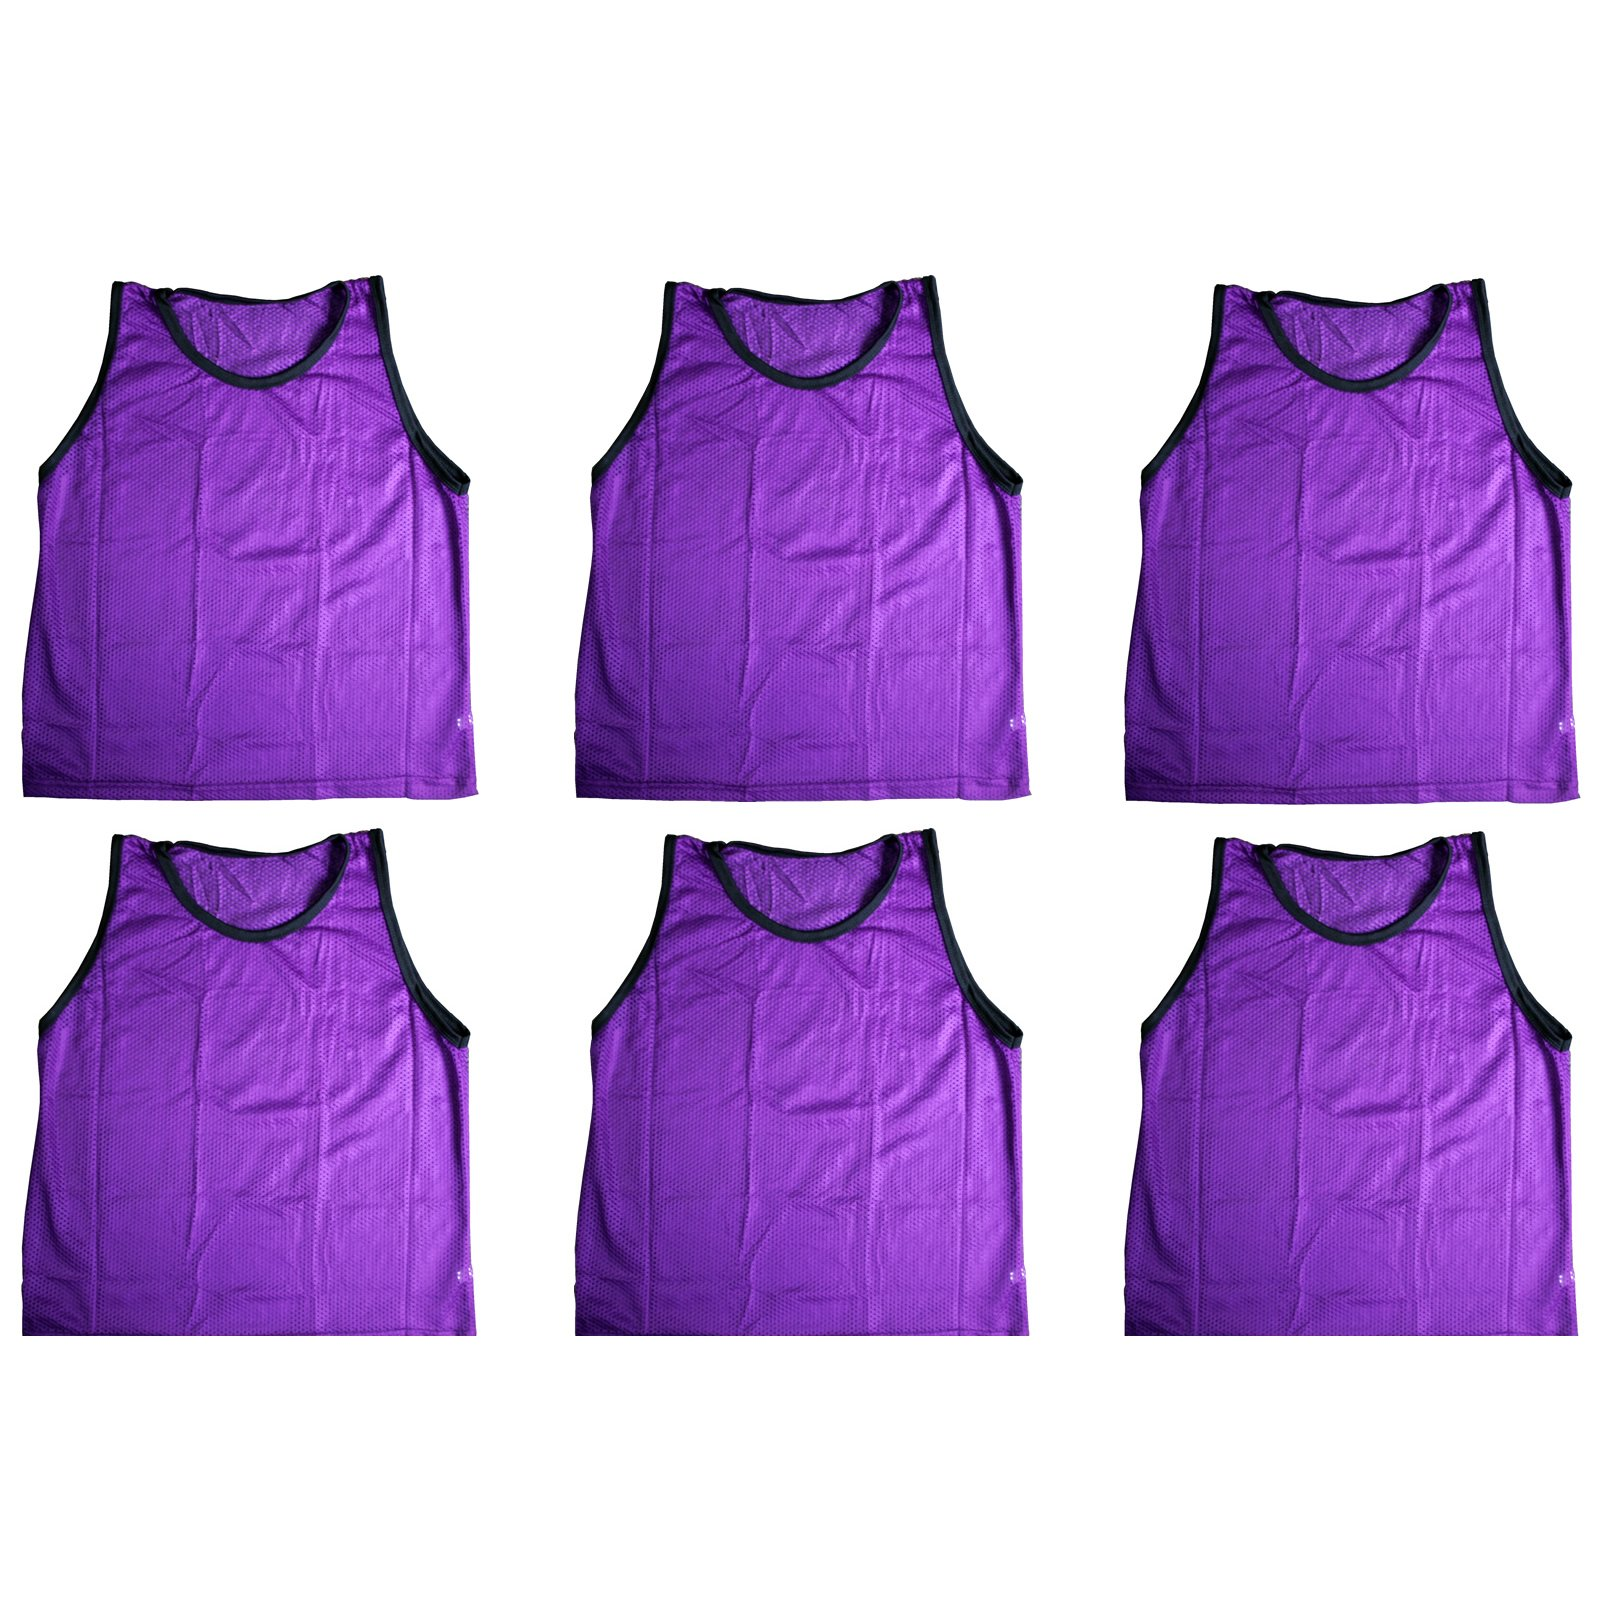 BlueDot Trading Adult Sports Pinnies Scrimmage Training Vests (6-Pack), Purple by Bluedot Trading